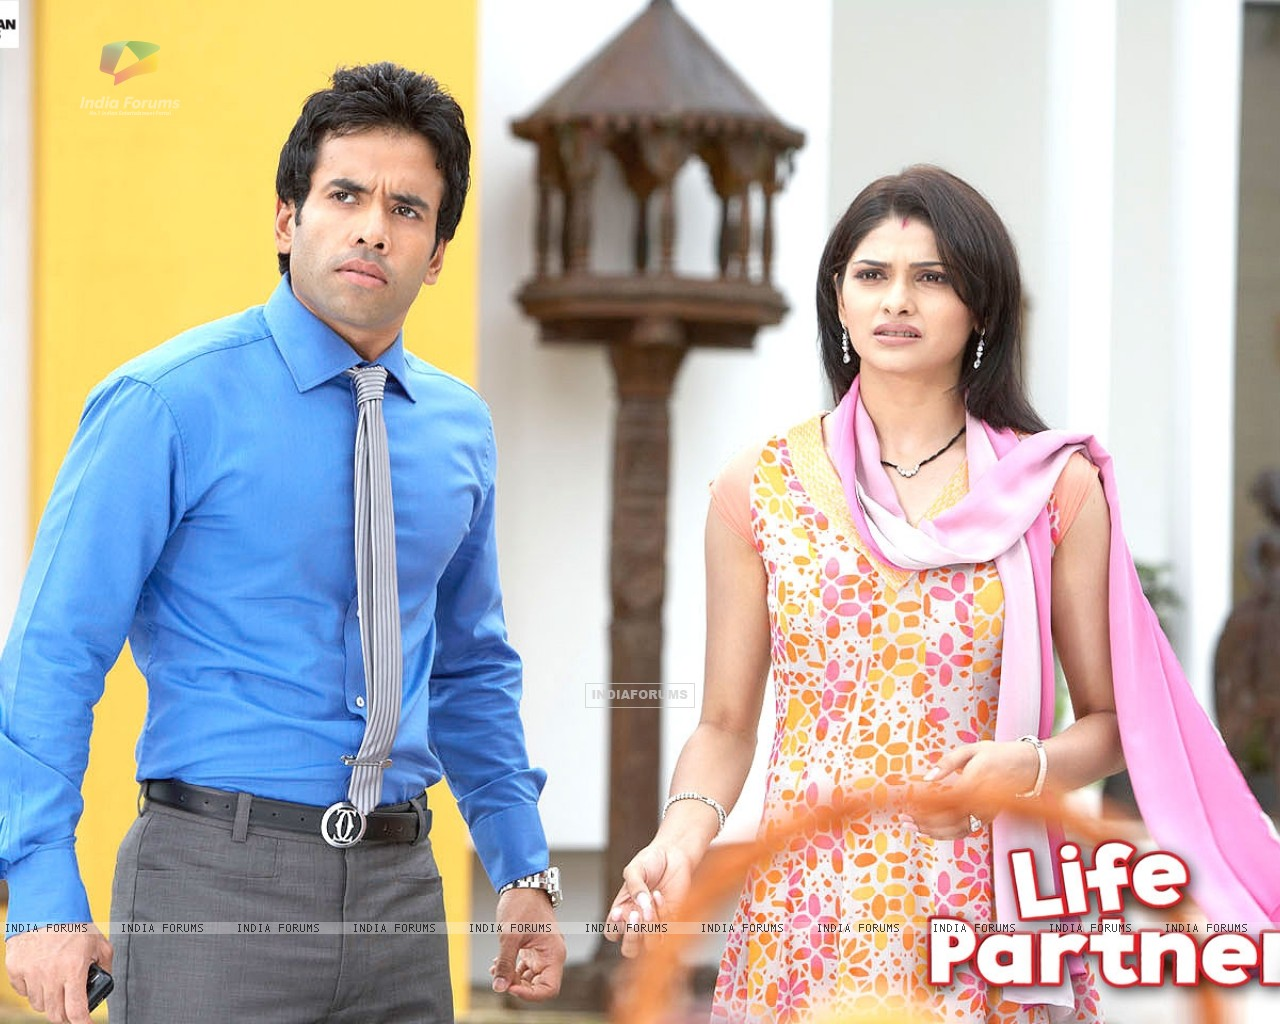 Life Partner movie wallpaper starring Tusshar and Prachi (31434) size:1280x1024